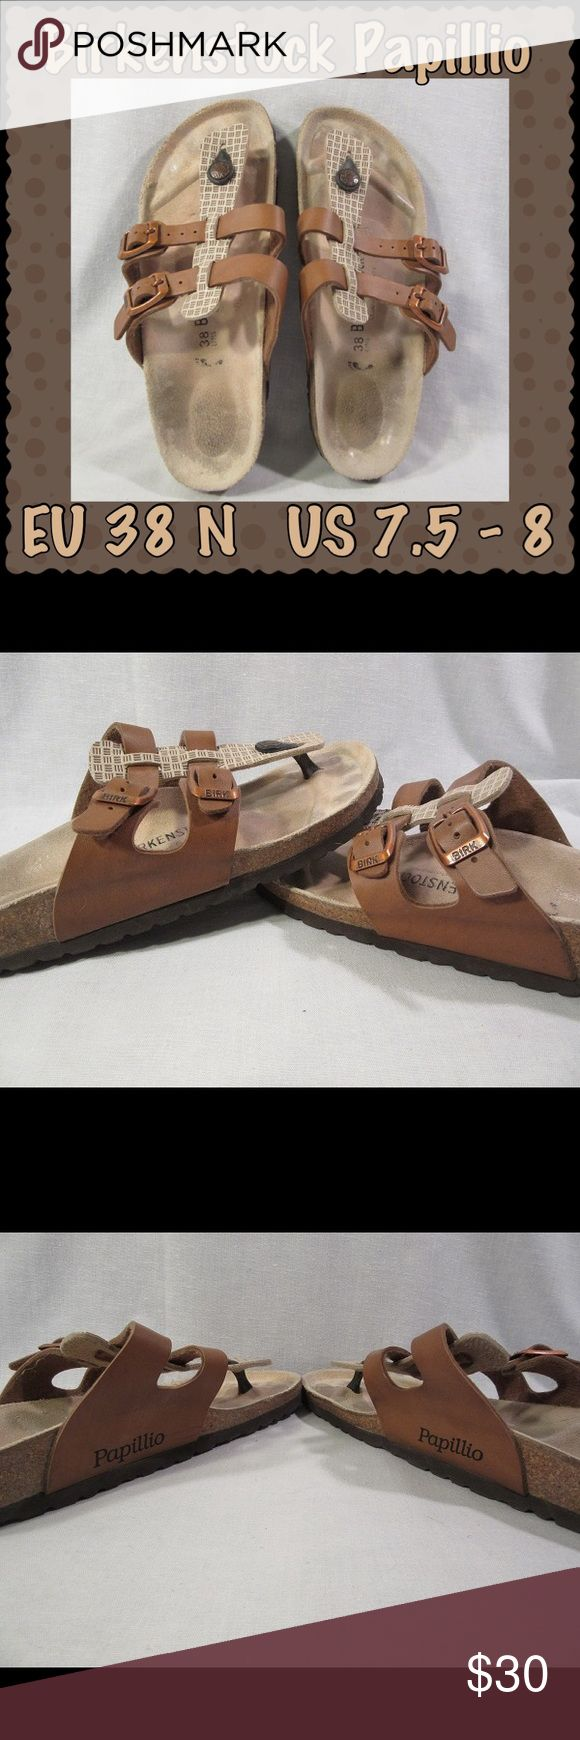 Birkenstock PAPILLIO Thong Sandals EU 38N US 7.5-8 Birkenstock PAPILLIO Adjustable 2 Strap Thong Sandals Cream/Tan & Copper/Brown EU 38N US 7.5-8. Closed Footprint. I believe they are the Birko-flor upper that feels like soft leather.  Straps have copper-tone buckles. Only worn a half-dozen times, indoors at work & to and from my car. Too narrow for me. Some staining on the footbed. Heels and big toes are a little bit broken in. The copper-tone finish on buckles appear to be a…